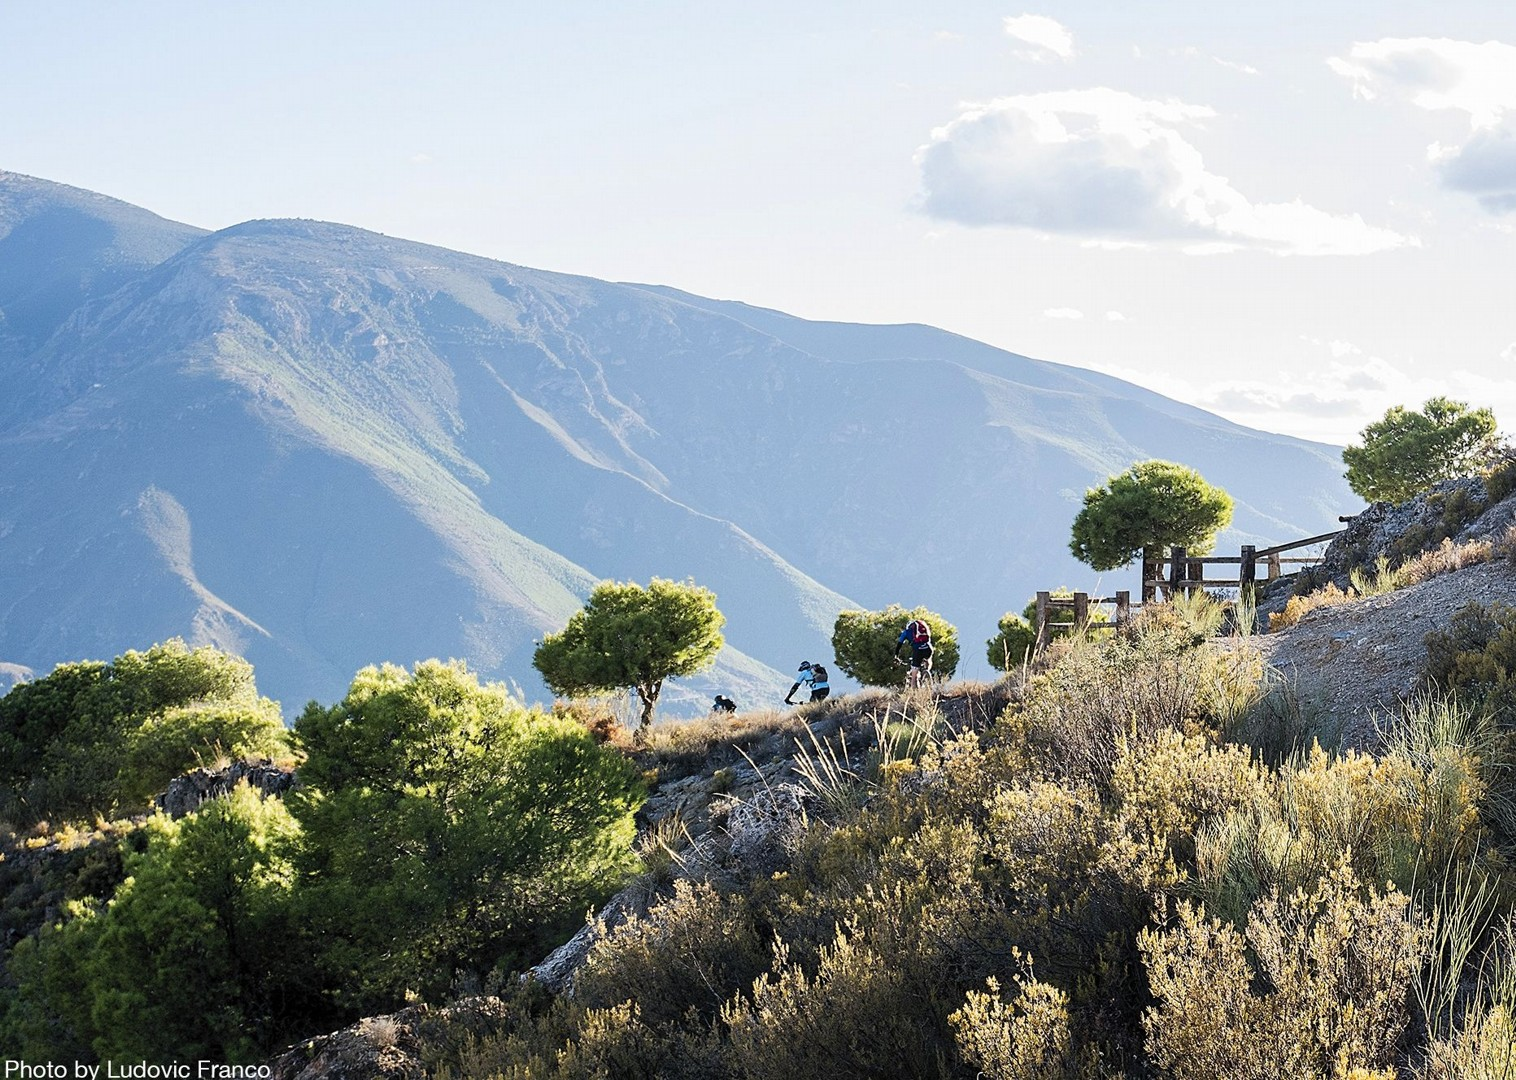 spain-sensational-sierra-nevada-guided-mountain-bike-holiday.jpg - Spain - Sensational Sierra Nevada - Mountain Biking